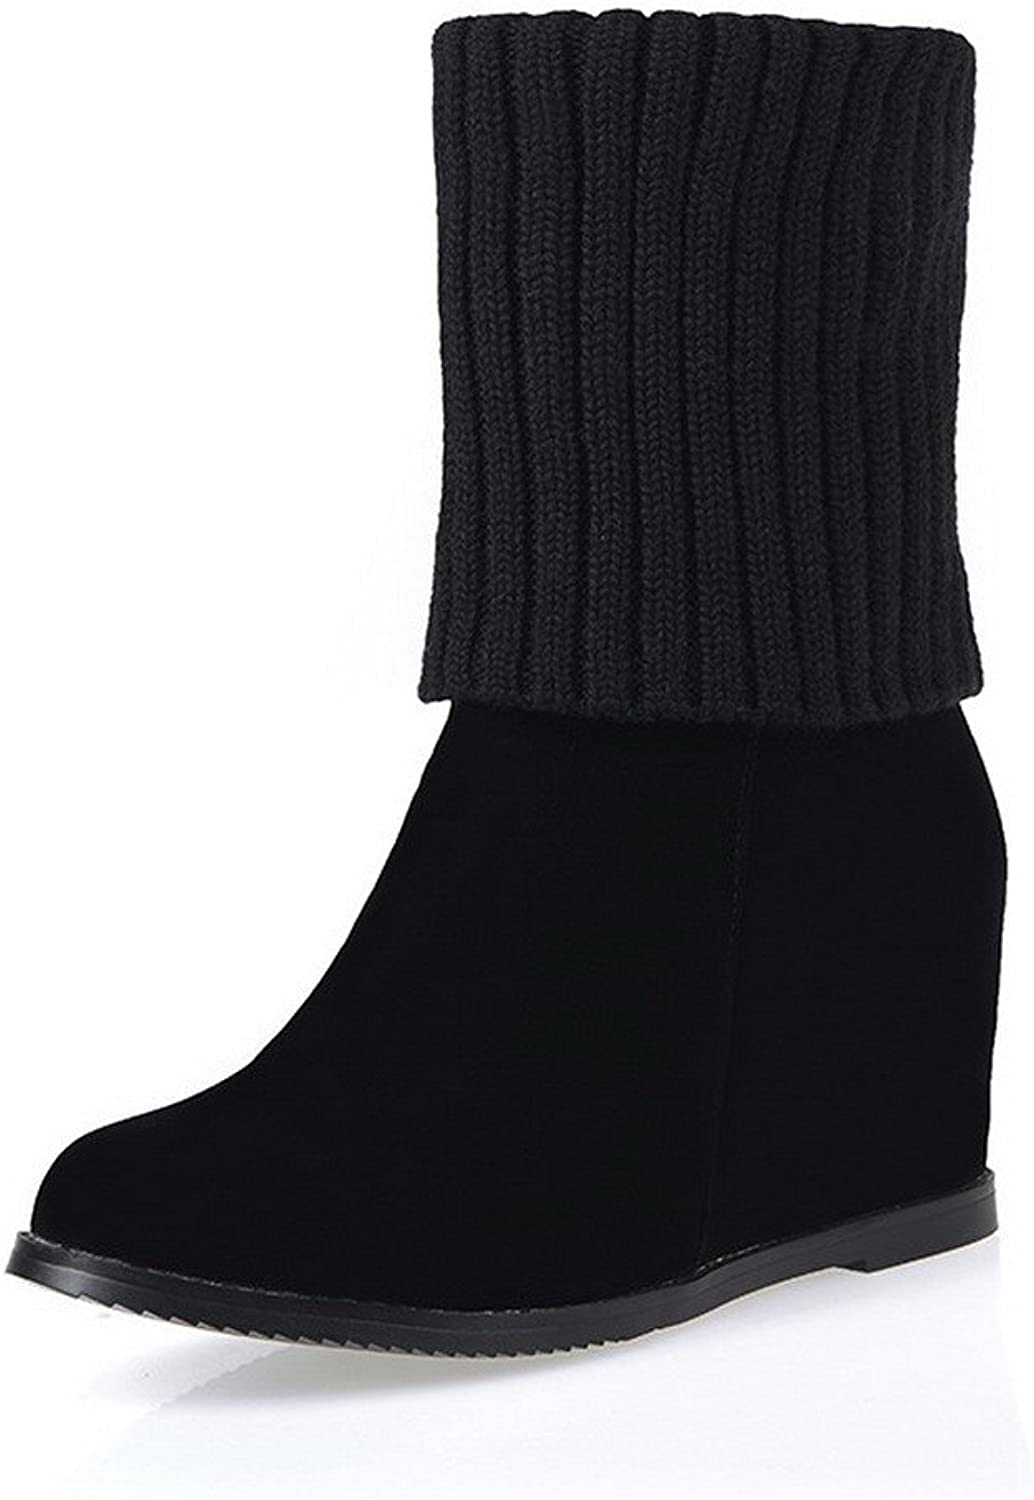 WeiPoot Women's Kitten-Heels Frosted Round Closed Toe Knee-high Boots